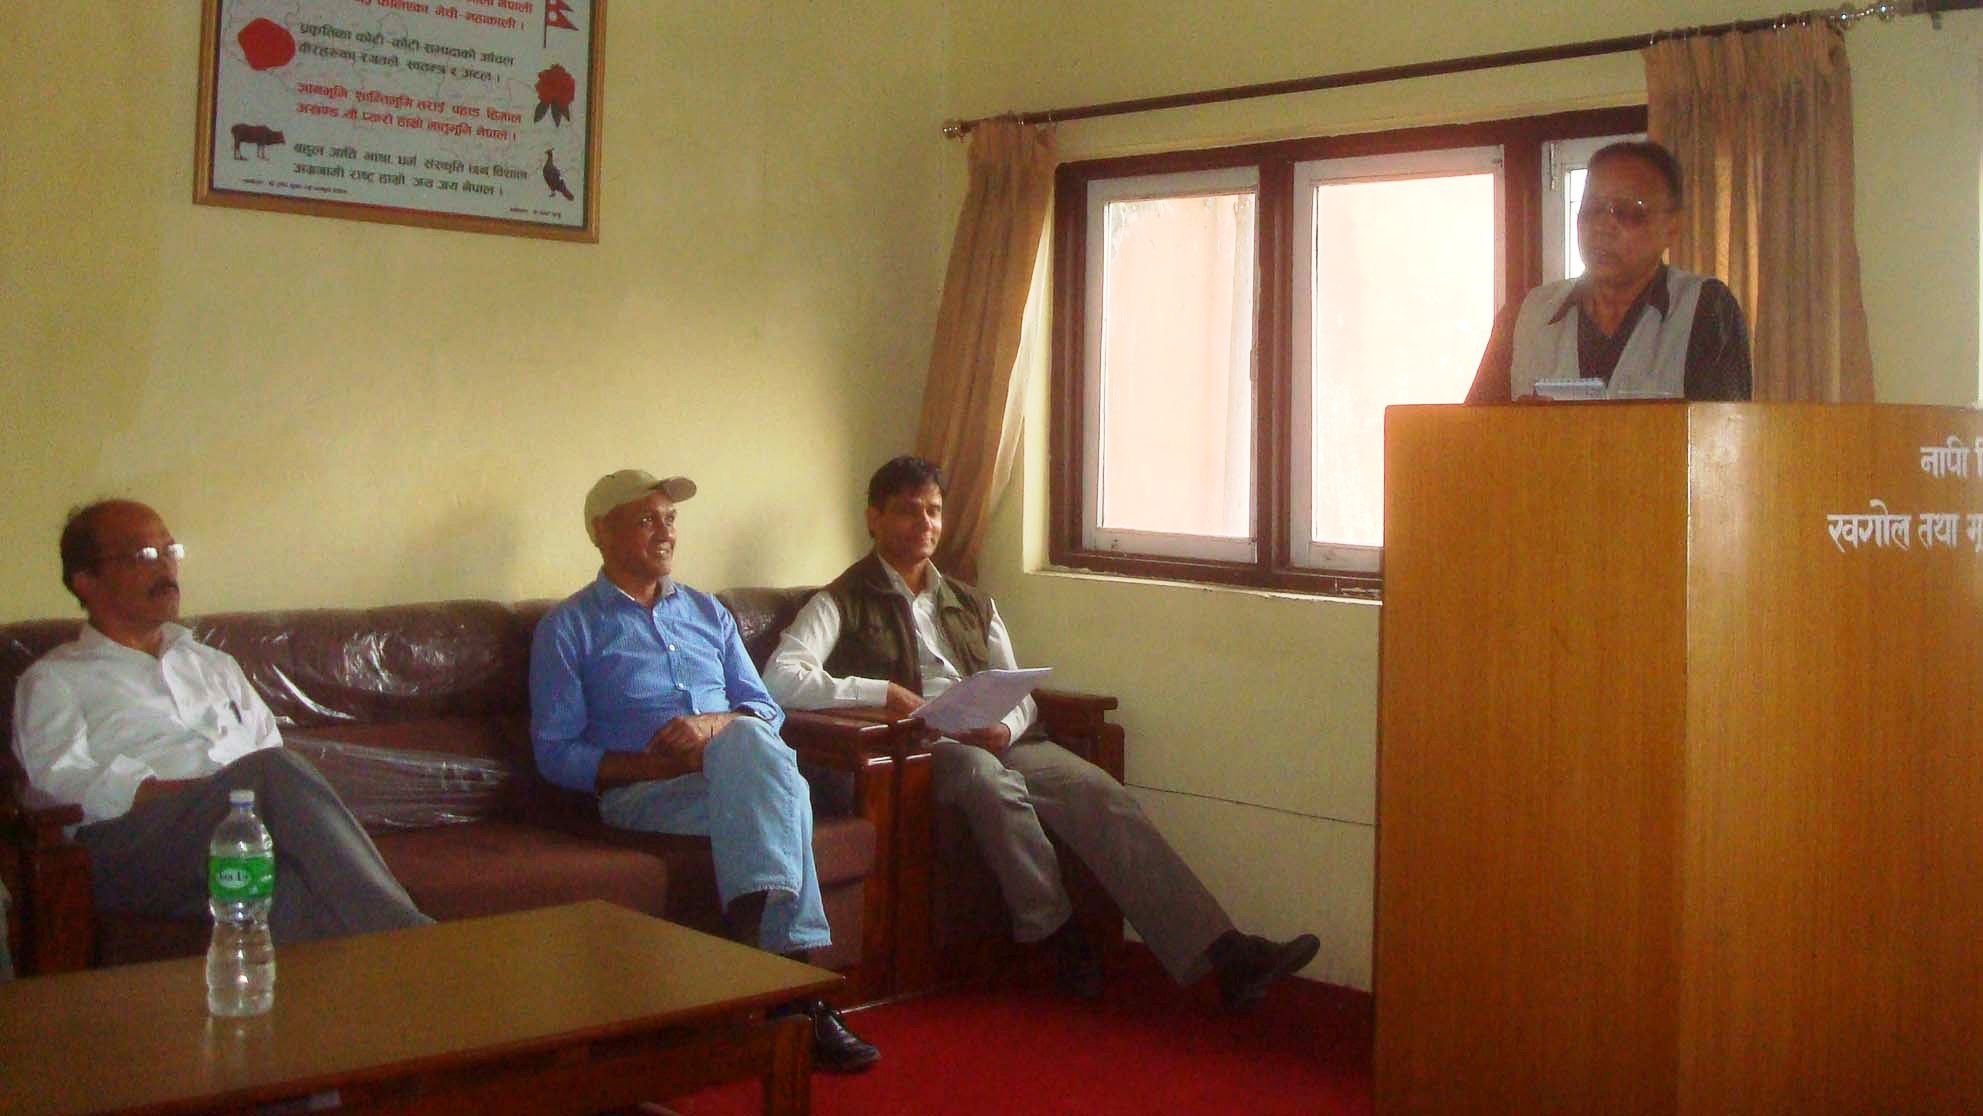 As An Invitee Saroj Chalise General Secretary Of Nepal Surveyors Association Expressed The View That Previously It Was Not Clearly